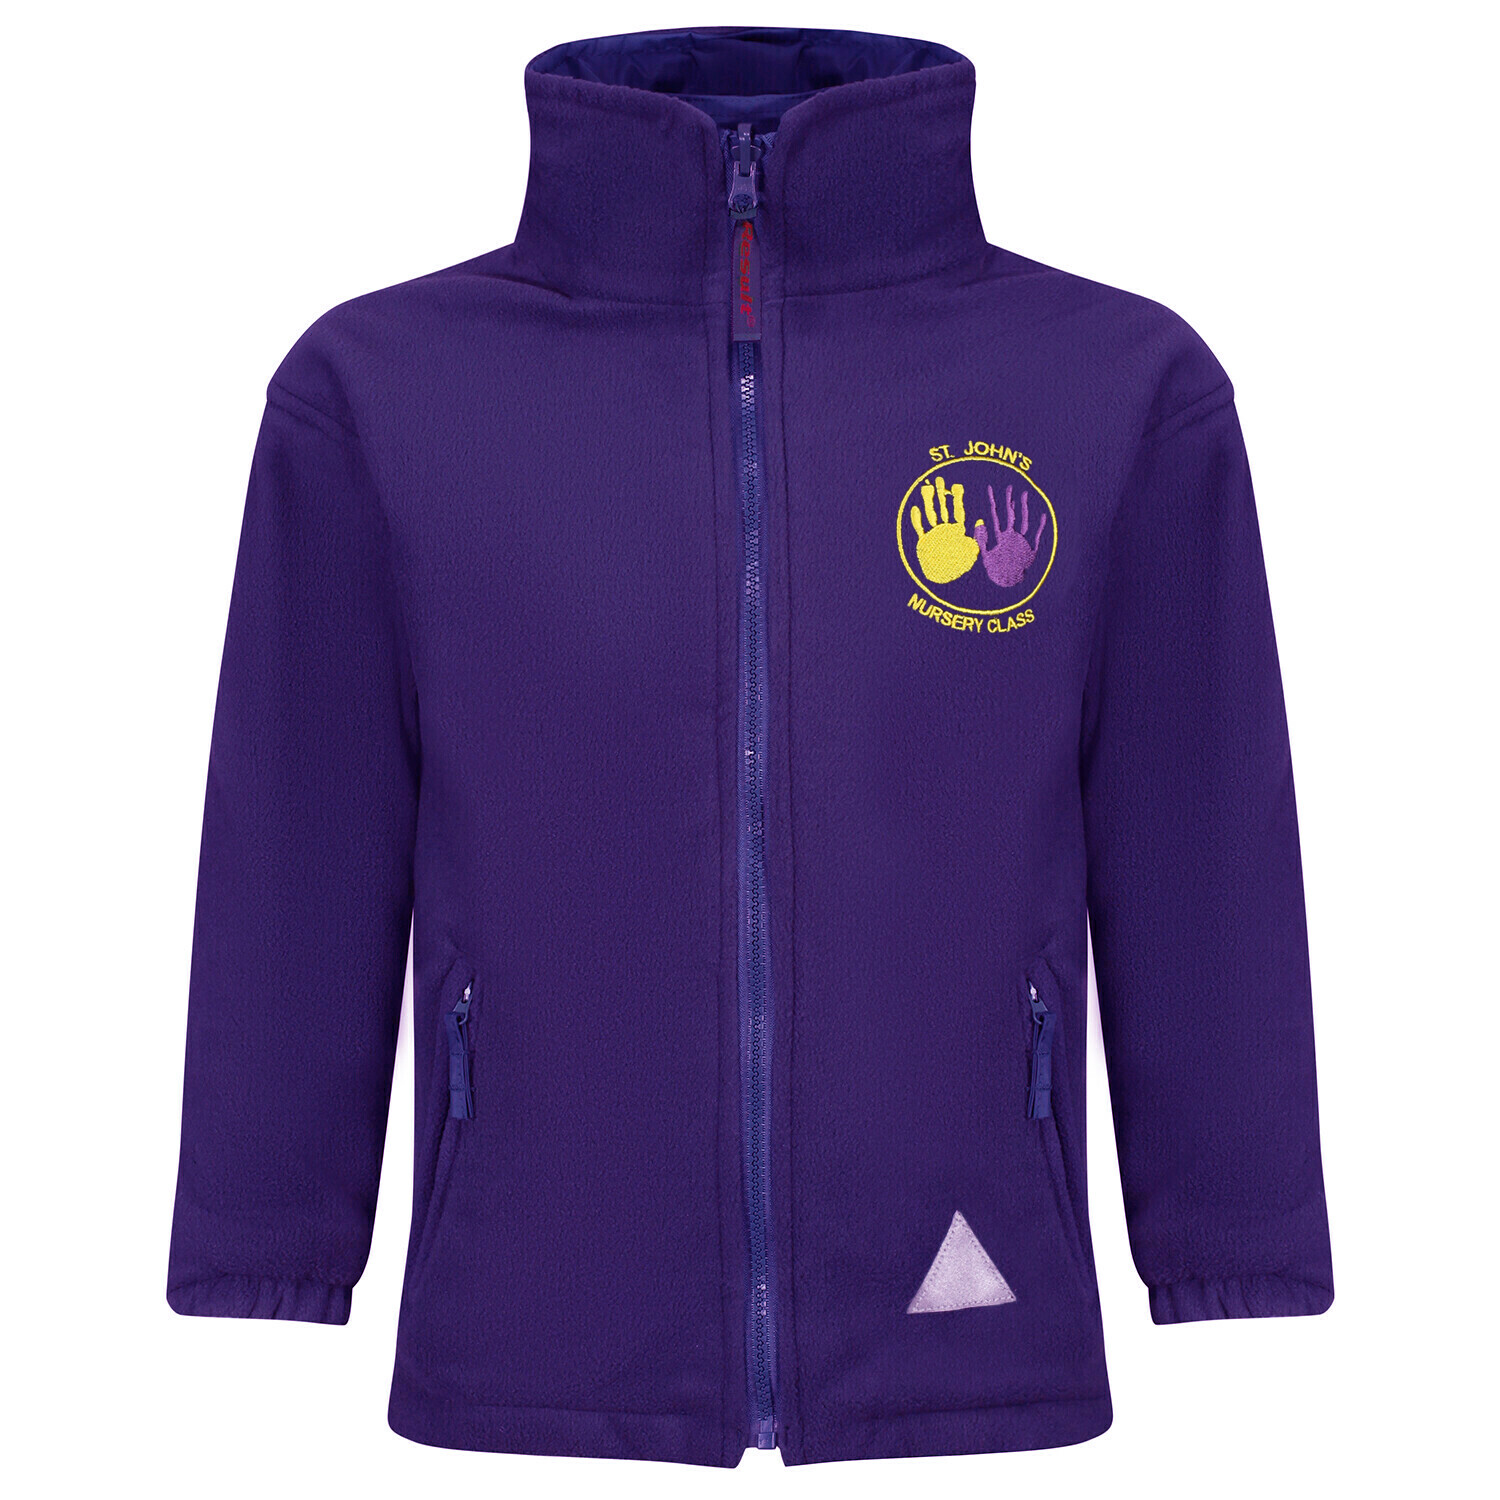 St John's Nursery Staff Fleece (Unisex) (RCSRS36)